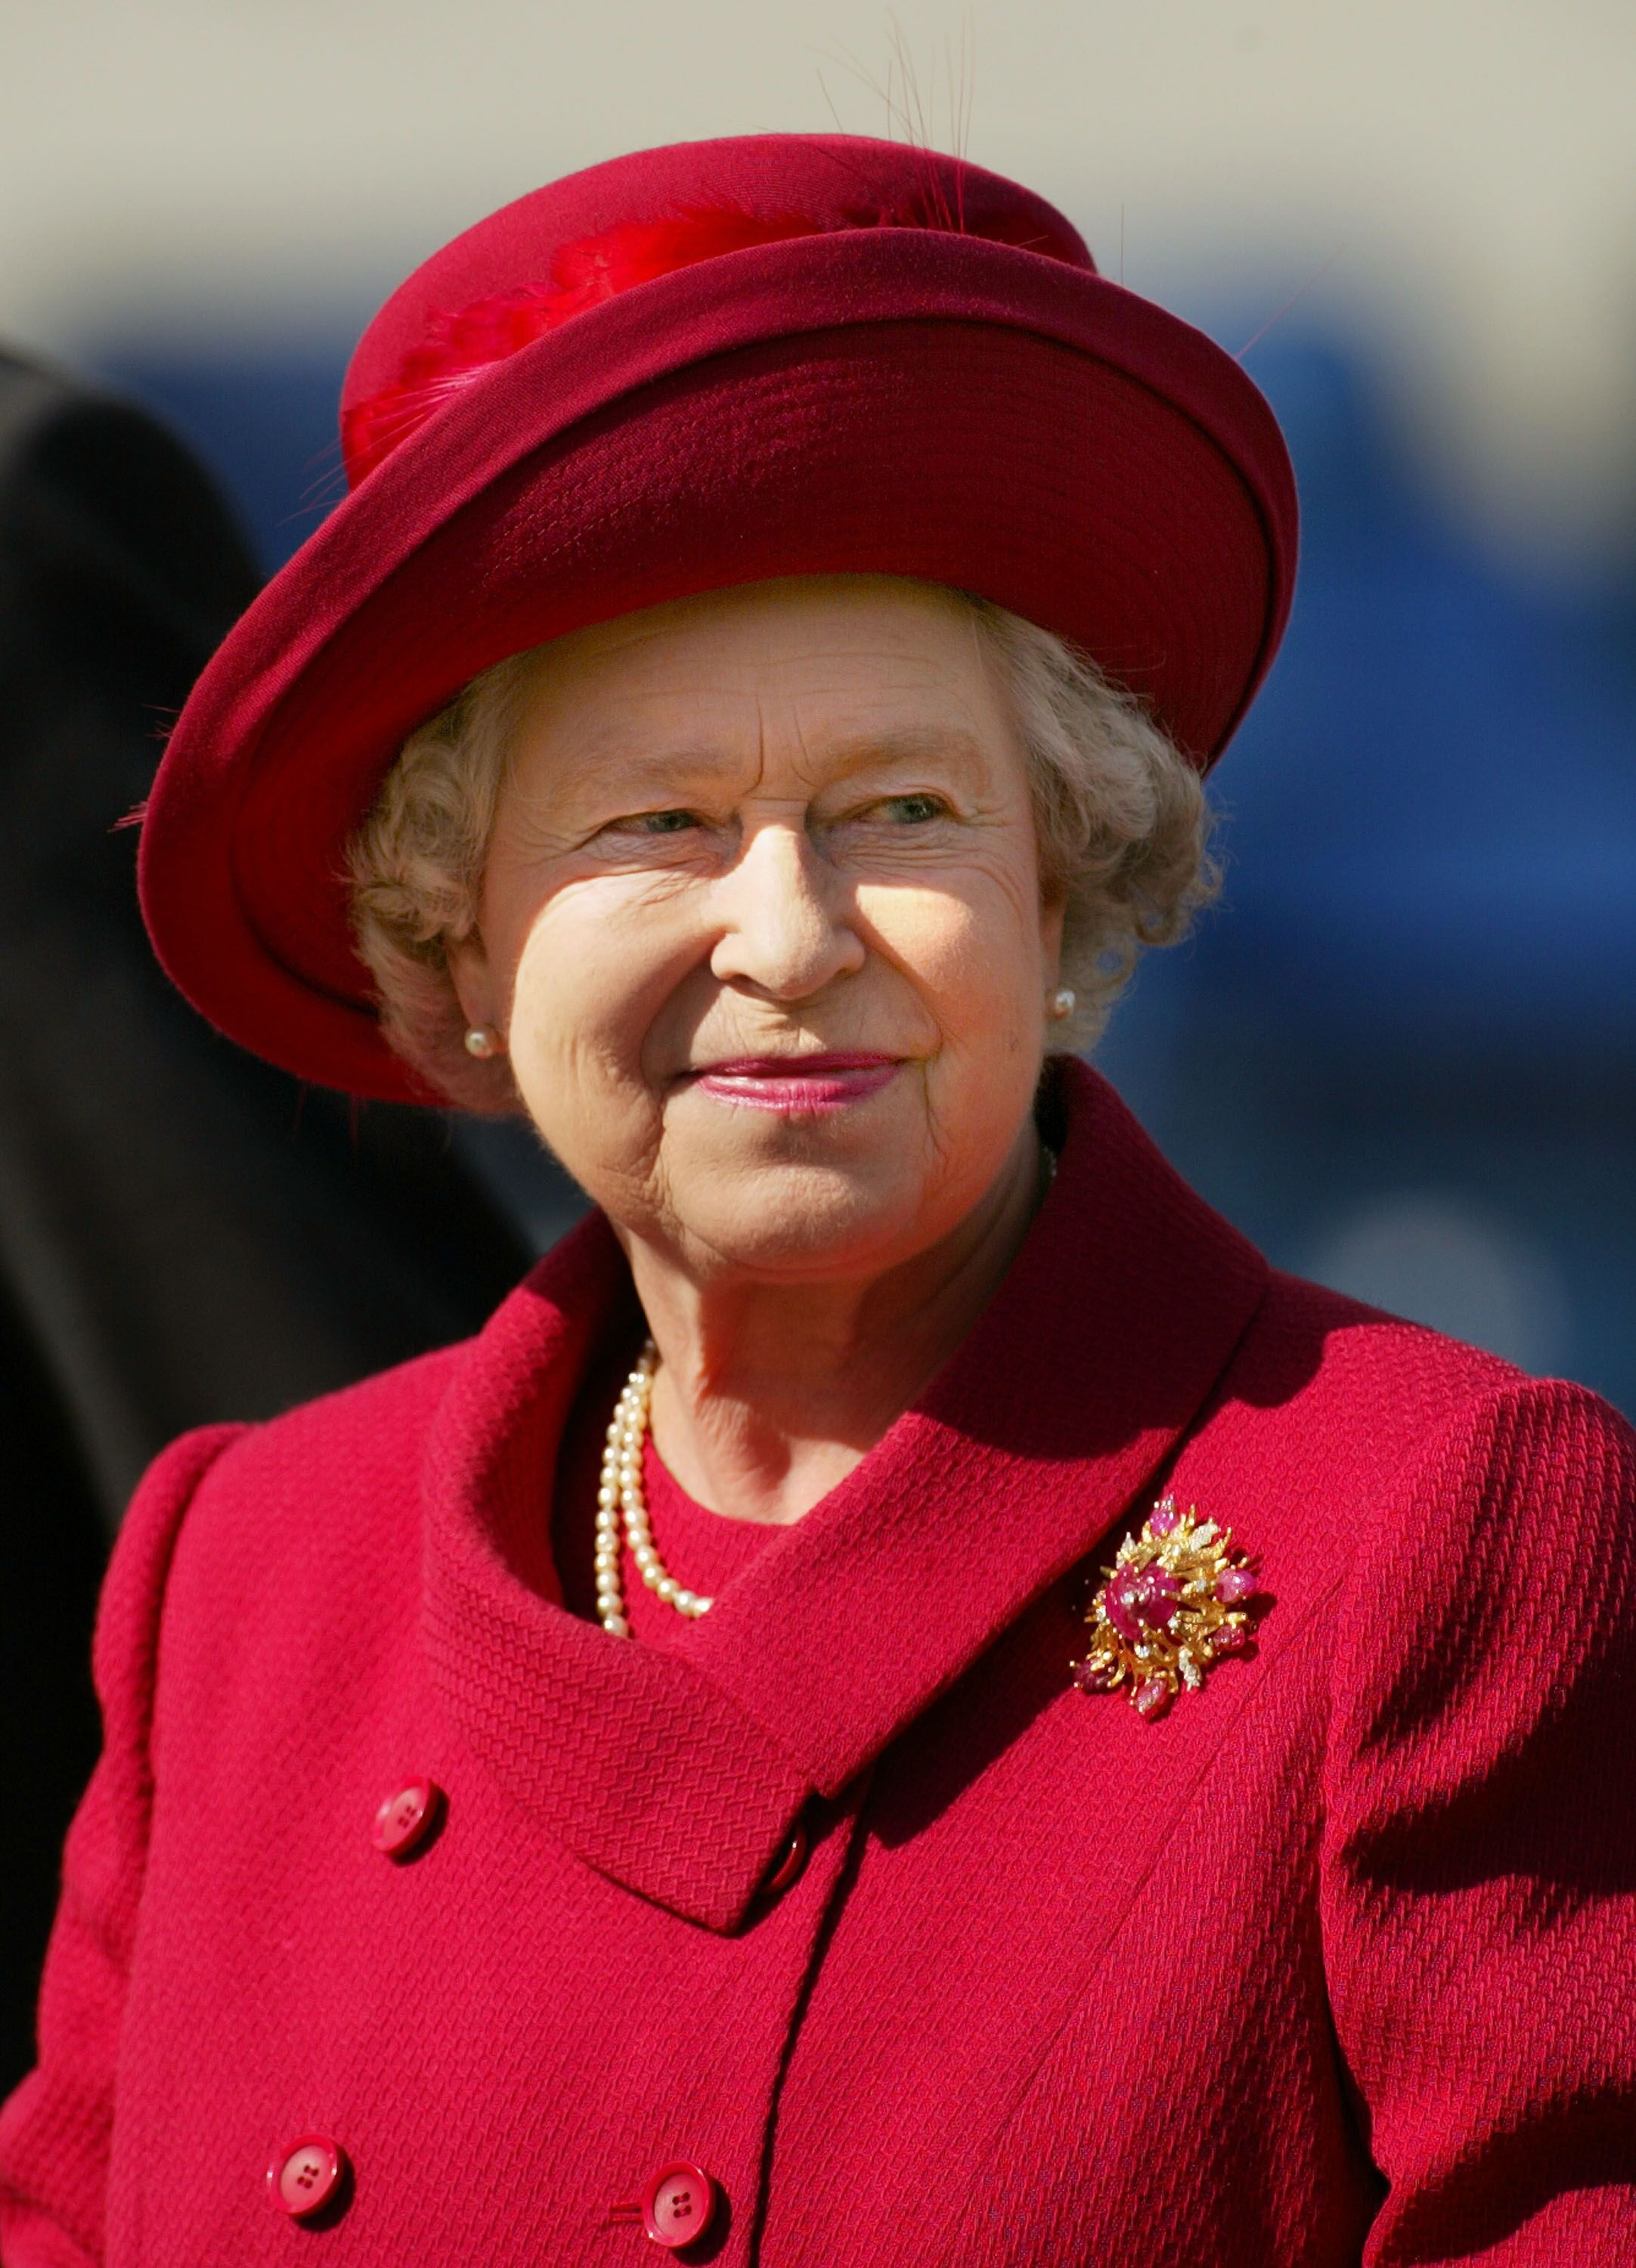 Queen Elizabeth pictured after she presented an award at Household Cavalry soldier at The Royal Windsor Horse Show, 2002, England.   Photo: Getty Images